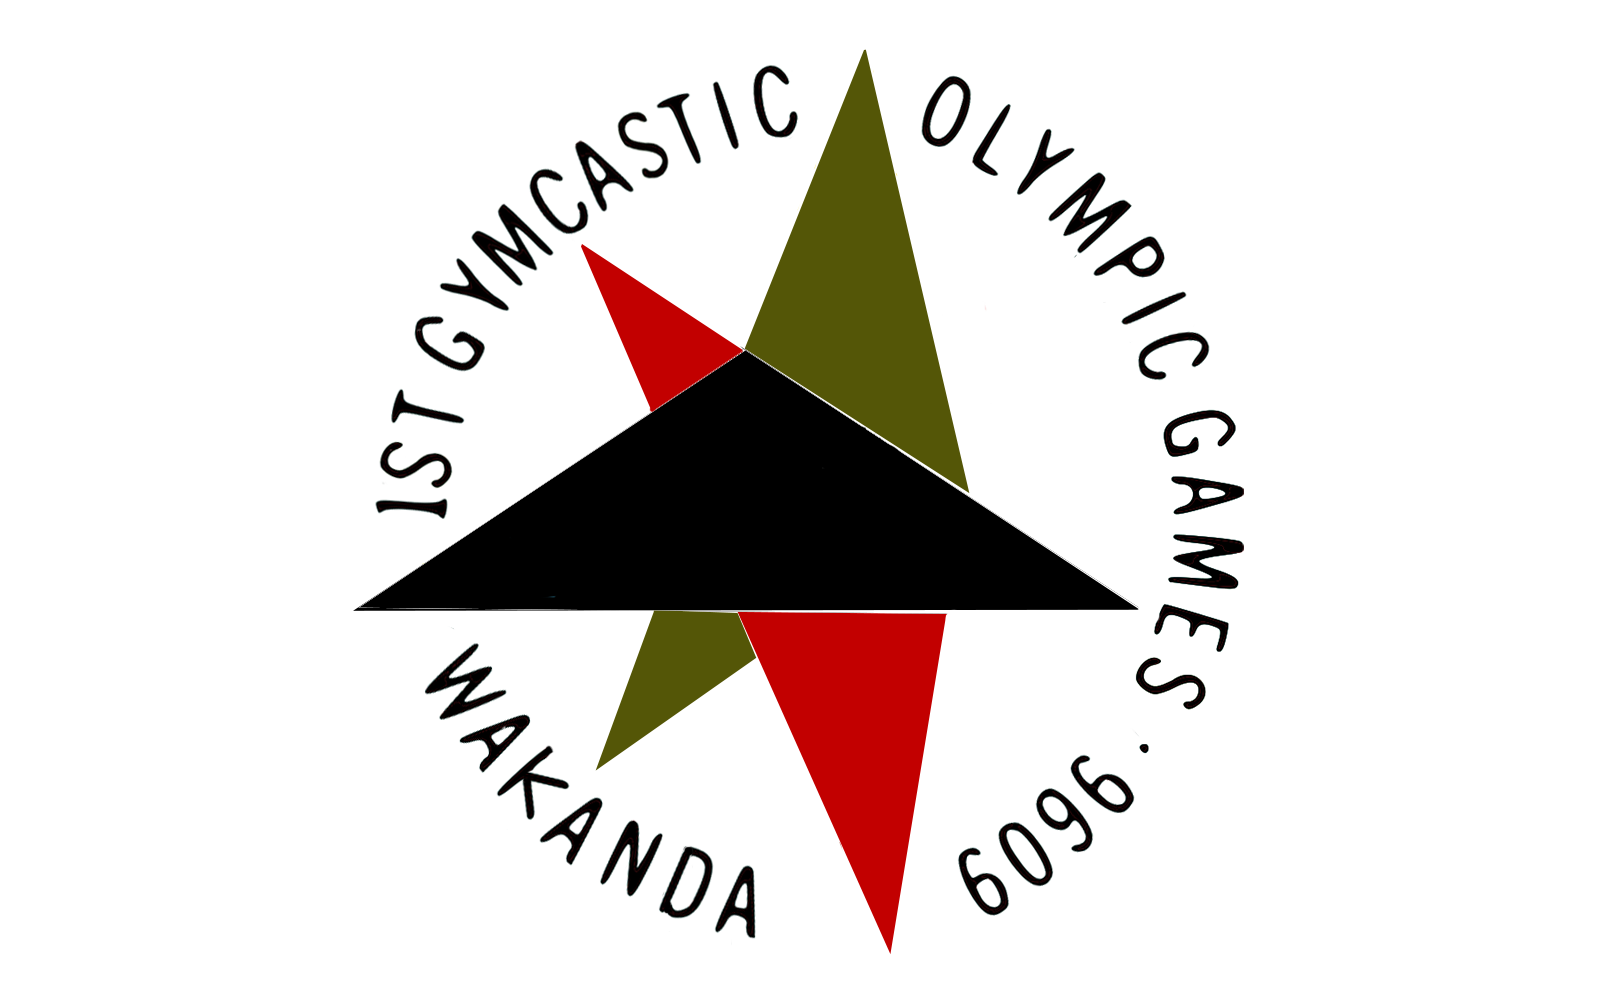 304: The GymCastic Olympics (Commissioned)